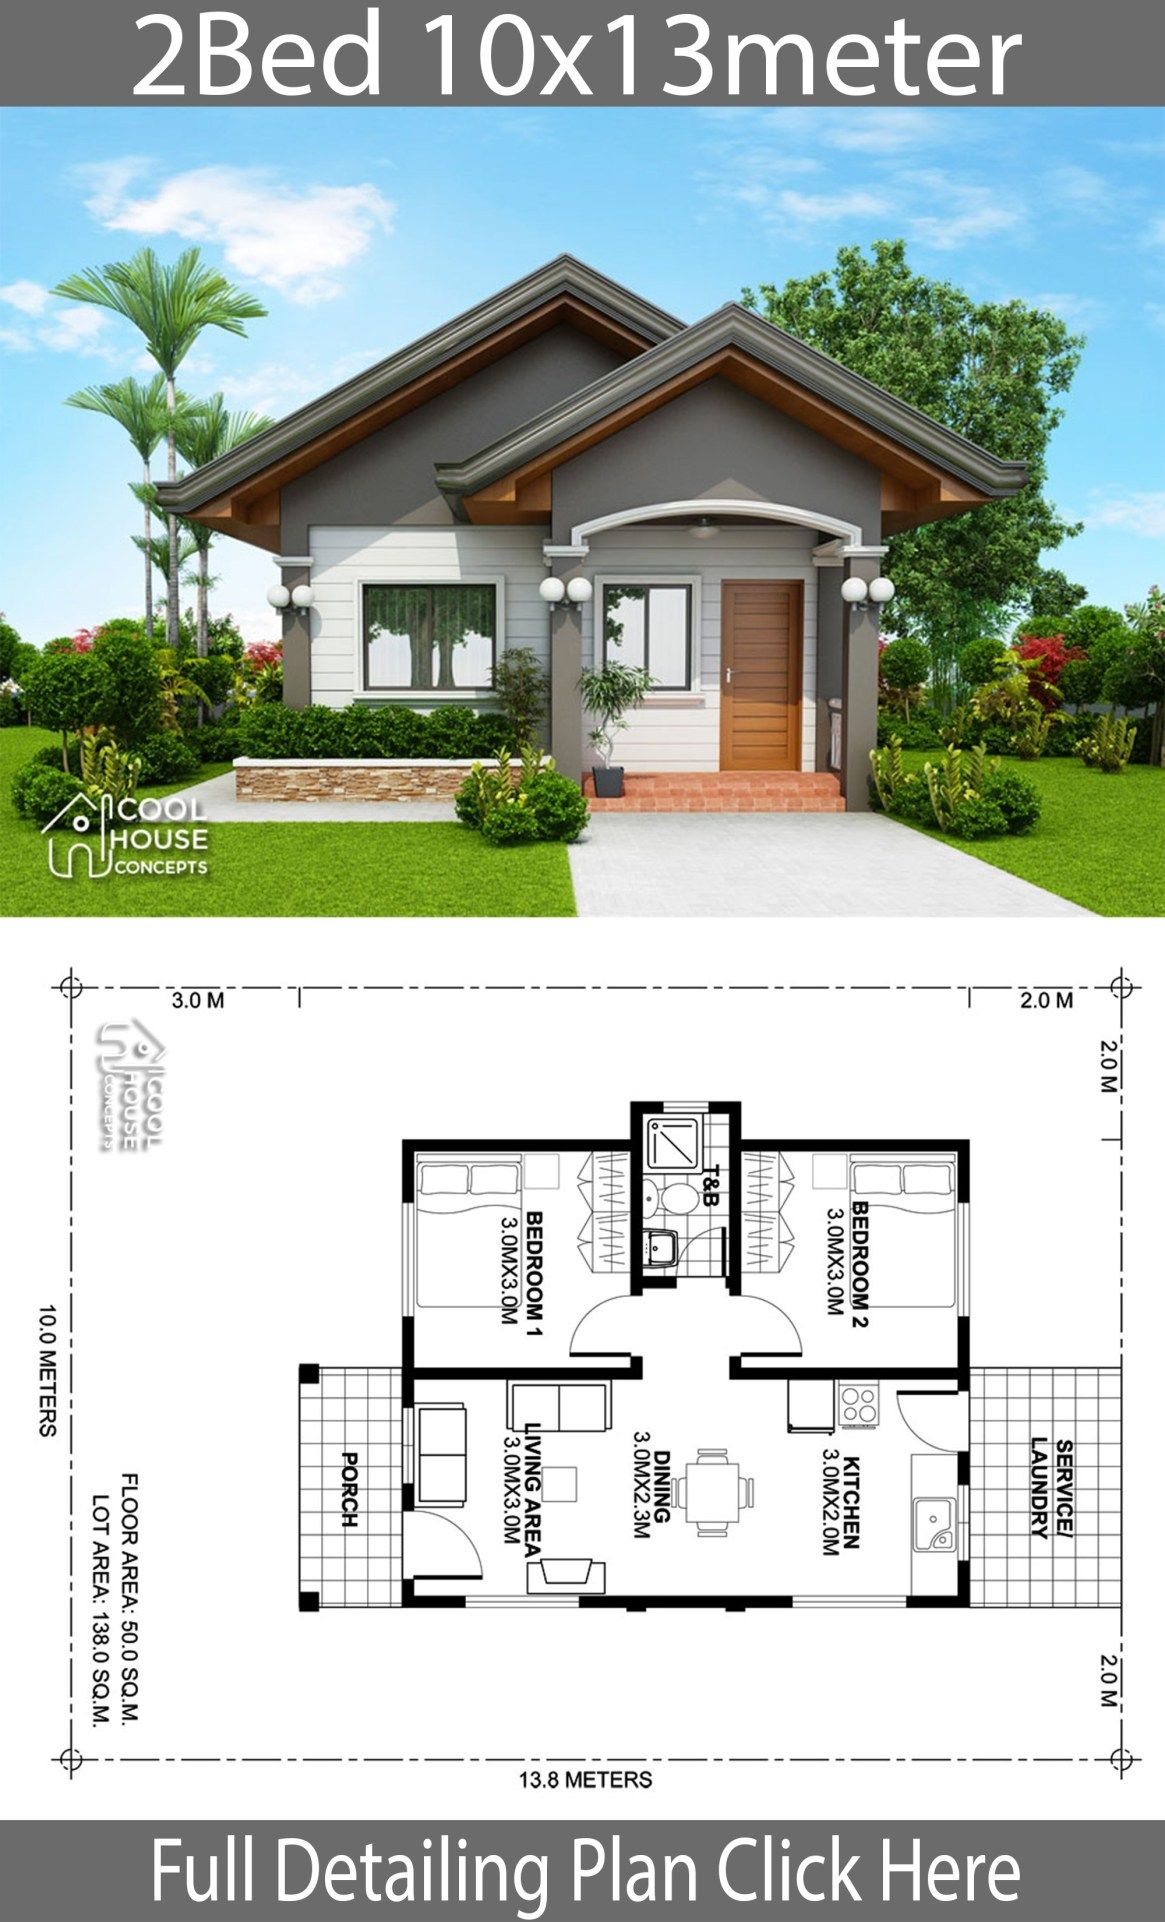 Home Design Plan 10x13m With 2 Bedrooms Home Design With Plansearch Simple House Design Modern House Plans Small House Design